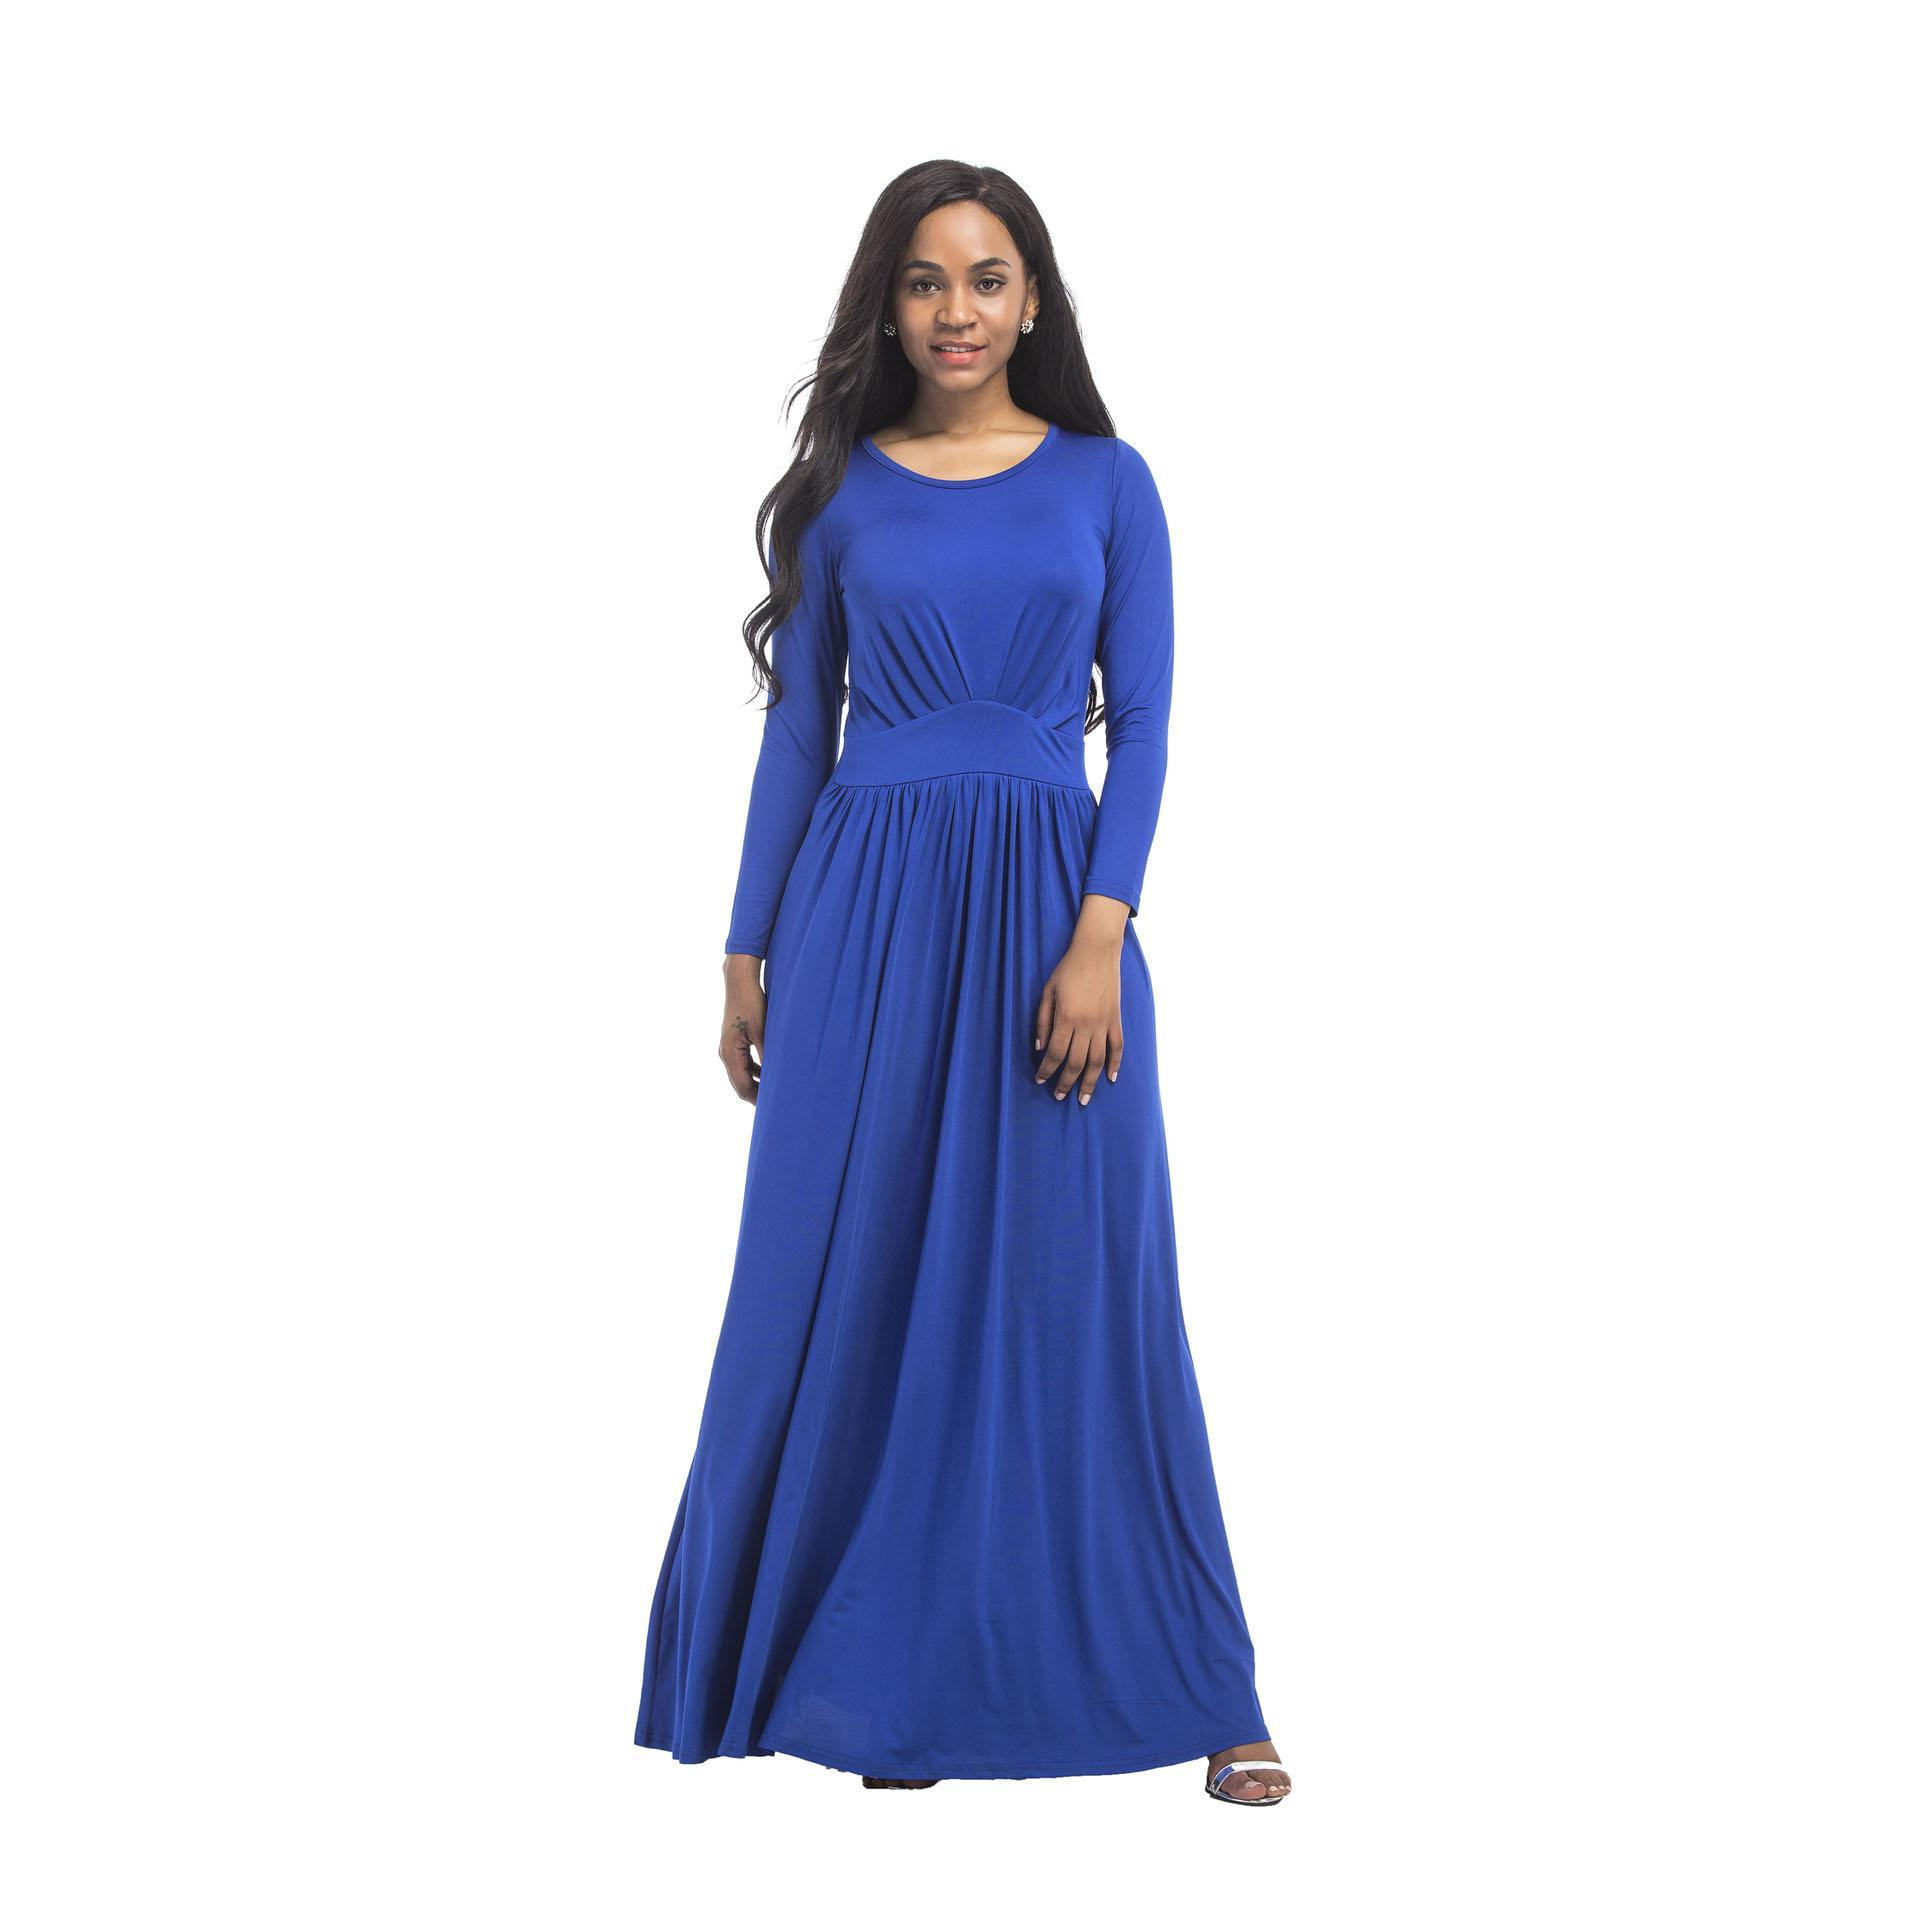 47db14c0c6 Women Long Dresses Loose Long Sleeve Autumn O Neck Casual Solid White Black  Blue Party Beach Plus Size Maxi Dress Cute Dresses For Women Silk Dresses  From ...